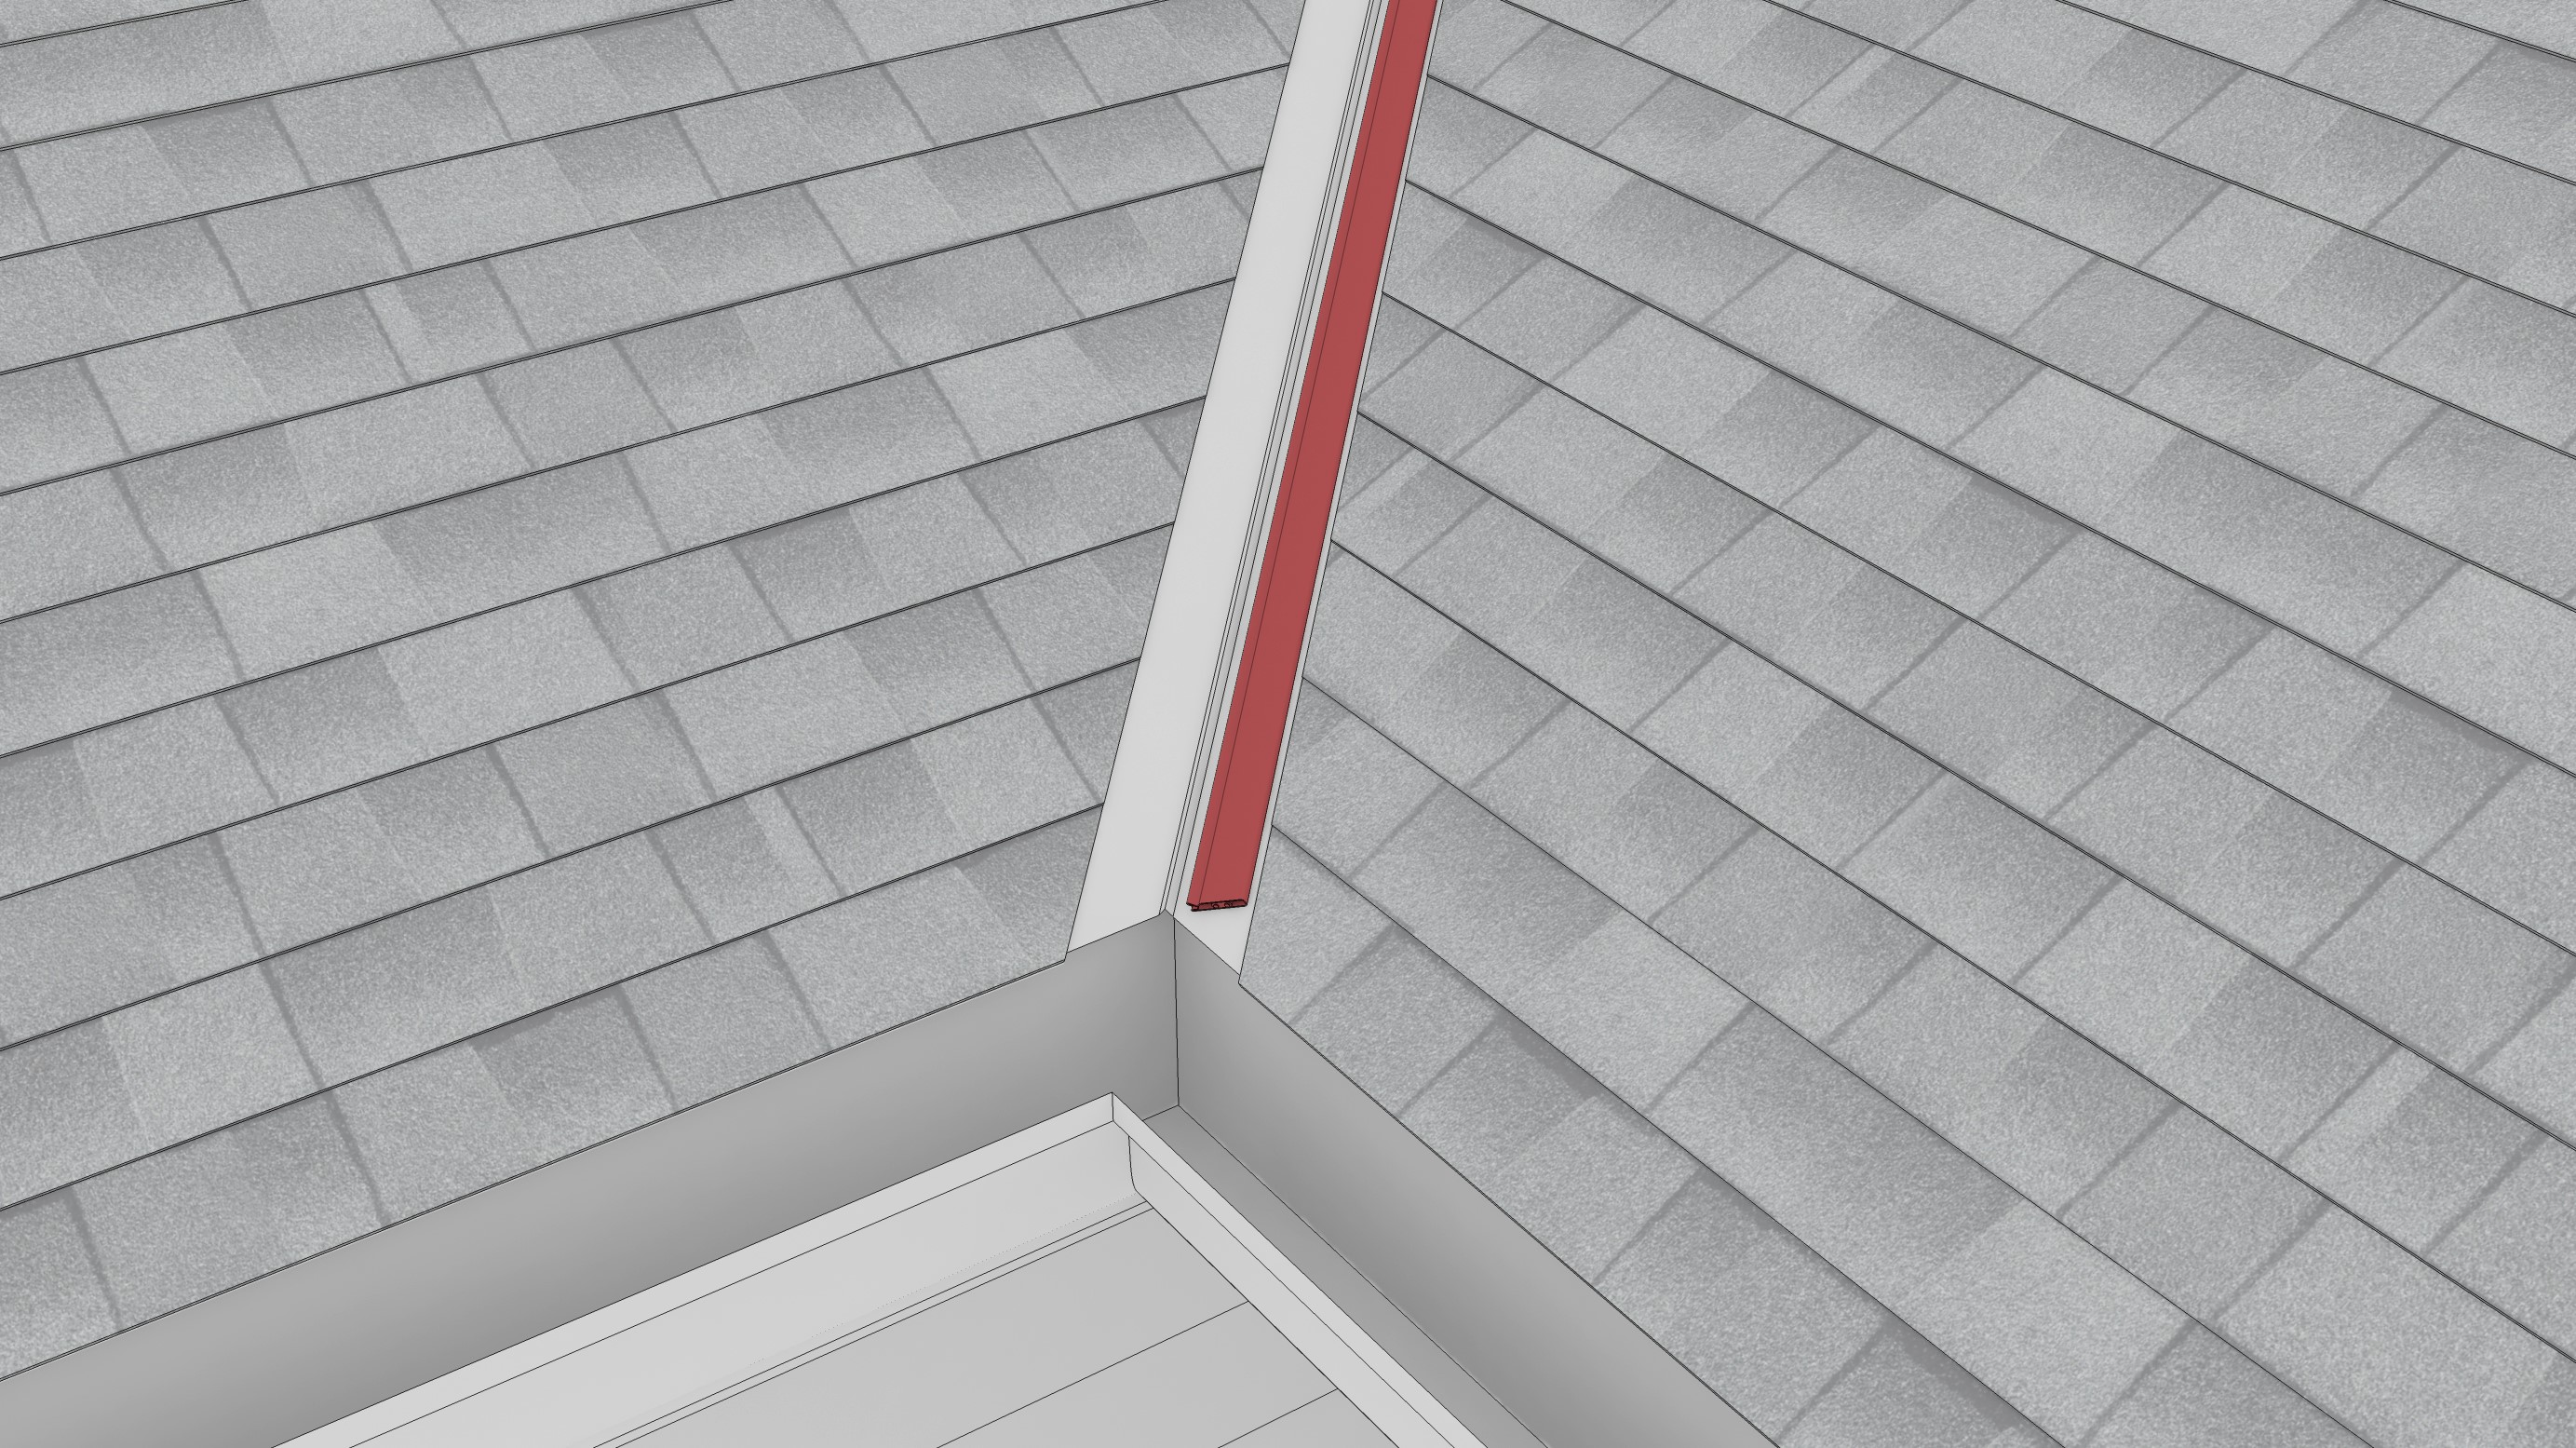 Prevent Property Damage With Ice Melting Shingles